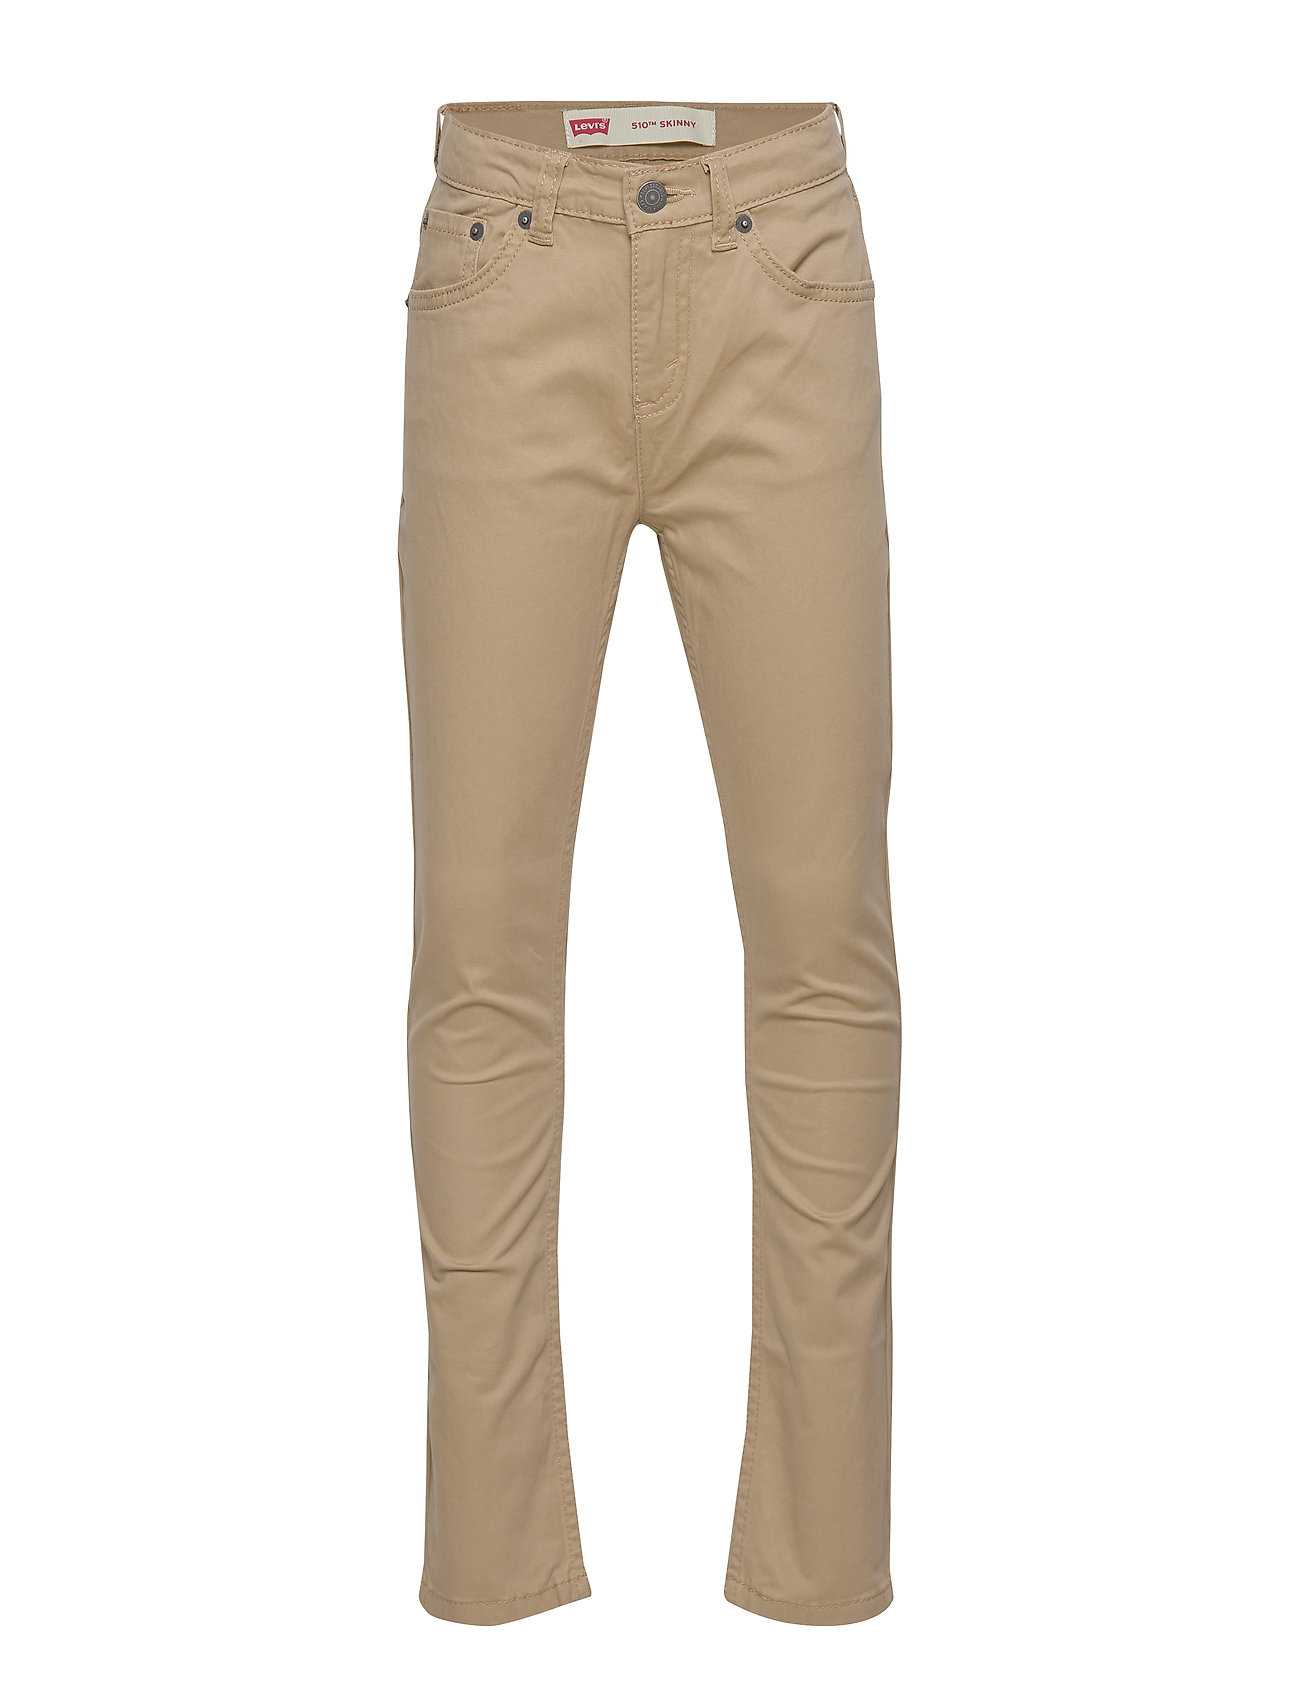 Levi's 510 Sueded Pant - HARVEST GOLD